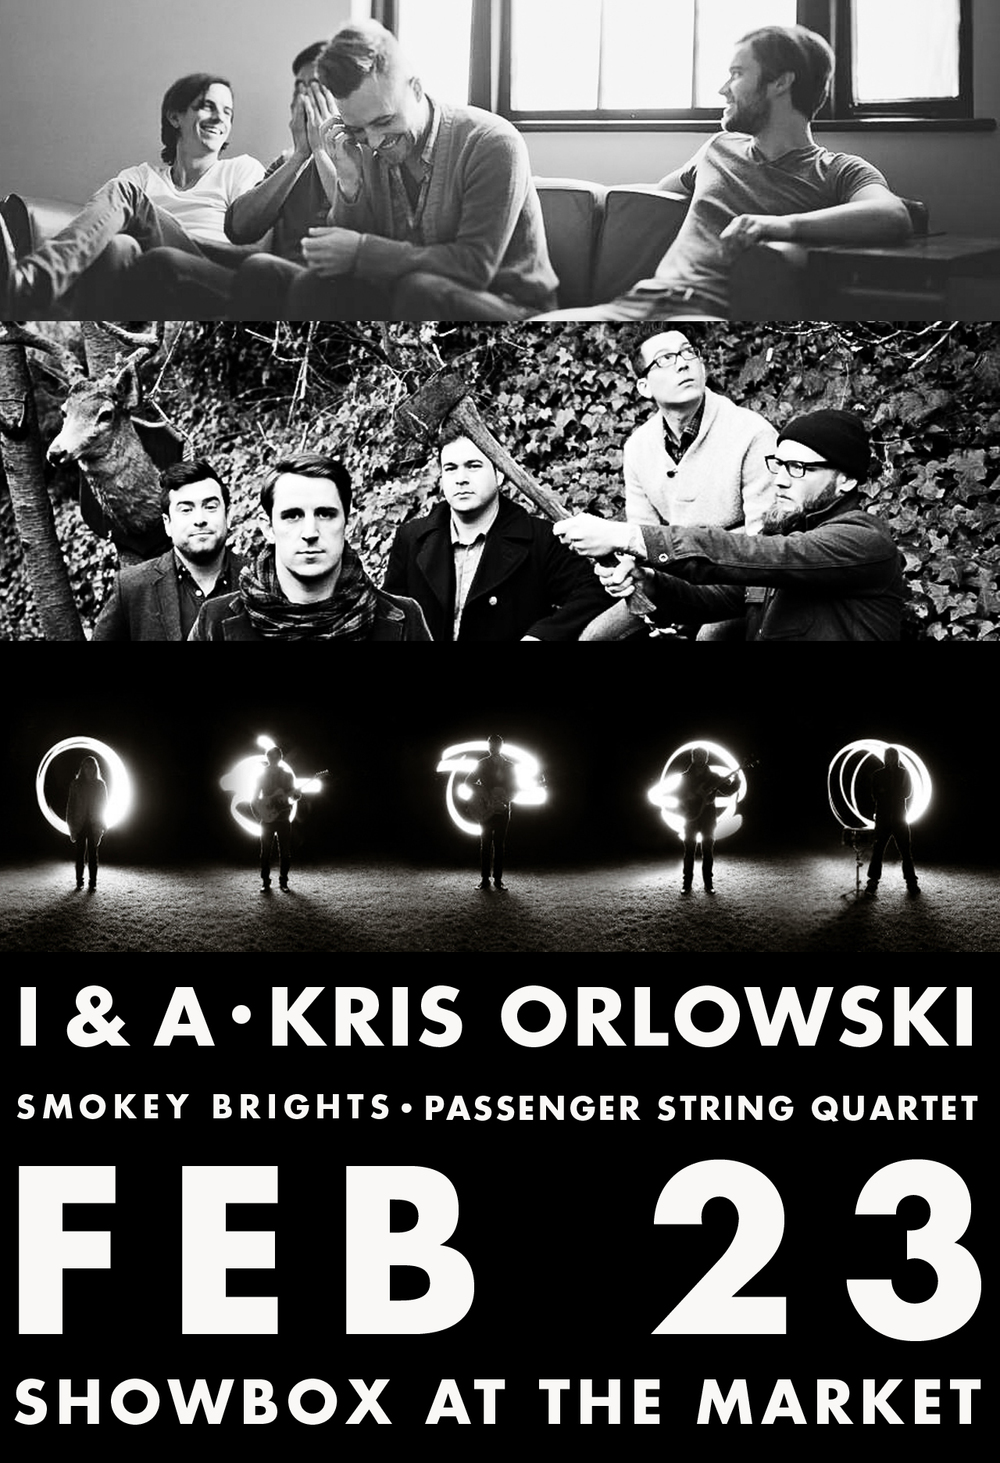 TICKETS GOING FAST FOR FEB 23rd ALBUM RELEASE at Showbox w/ Kris Orlowski / Smokey Brights / & Passenger String Quartet.  Get 'em while you can!    Pre-Sale Link:    http://bit.ly/IvanAlyoshaShowbox     Event Page:    http://www.facebook.com/events/348750561889892/?fref=ts